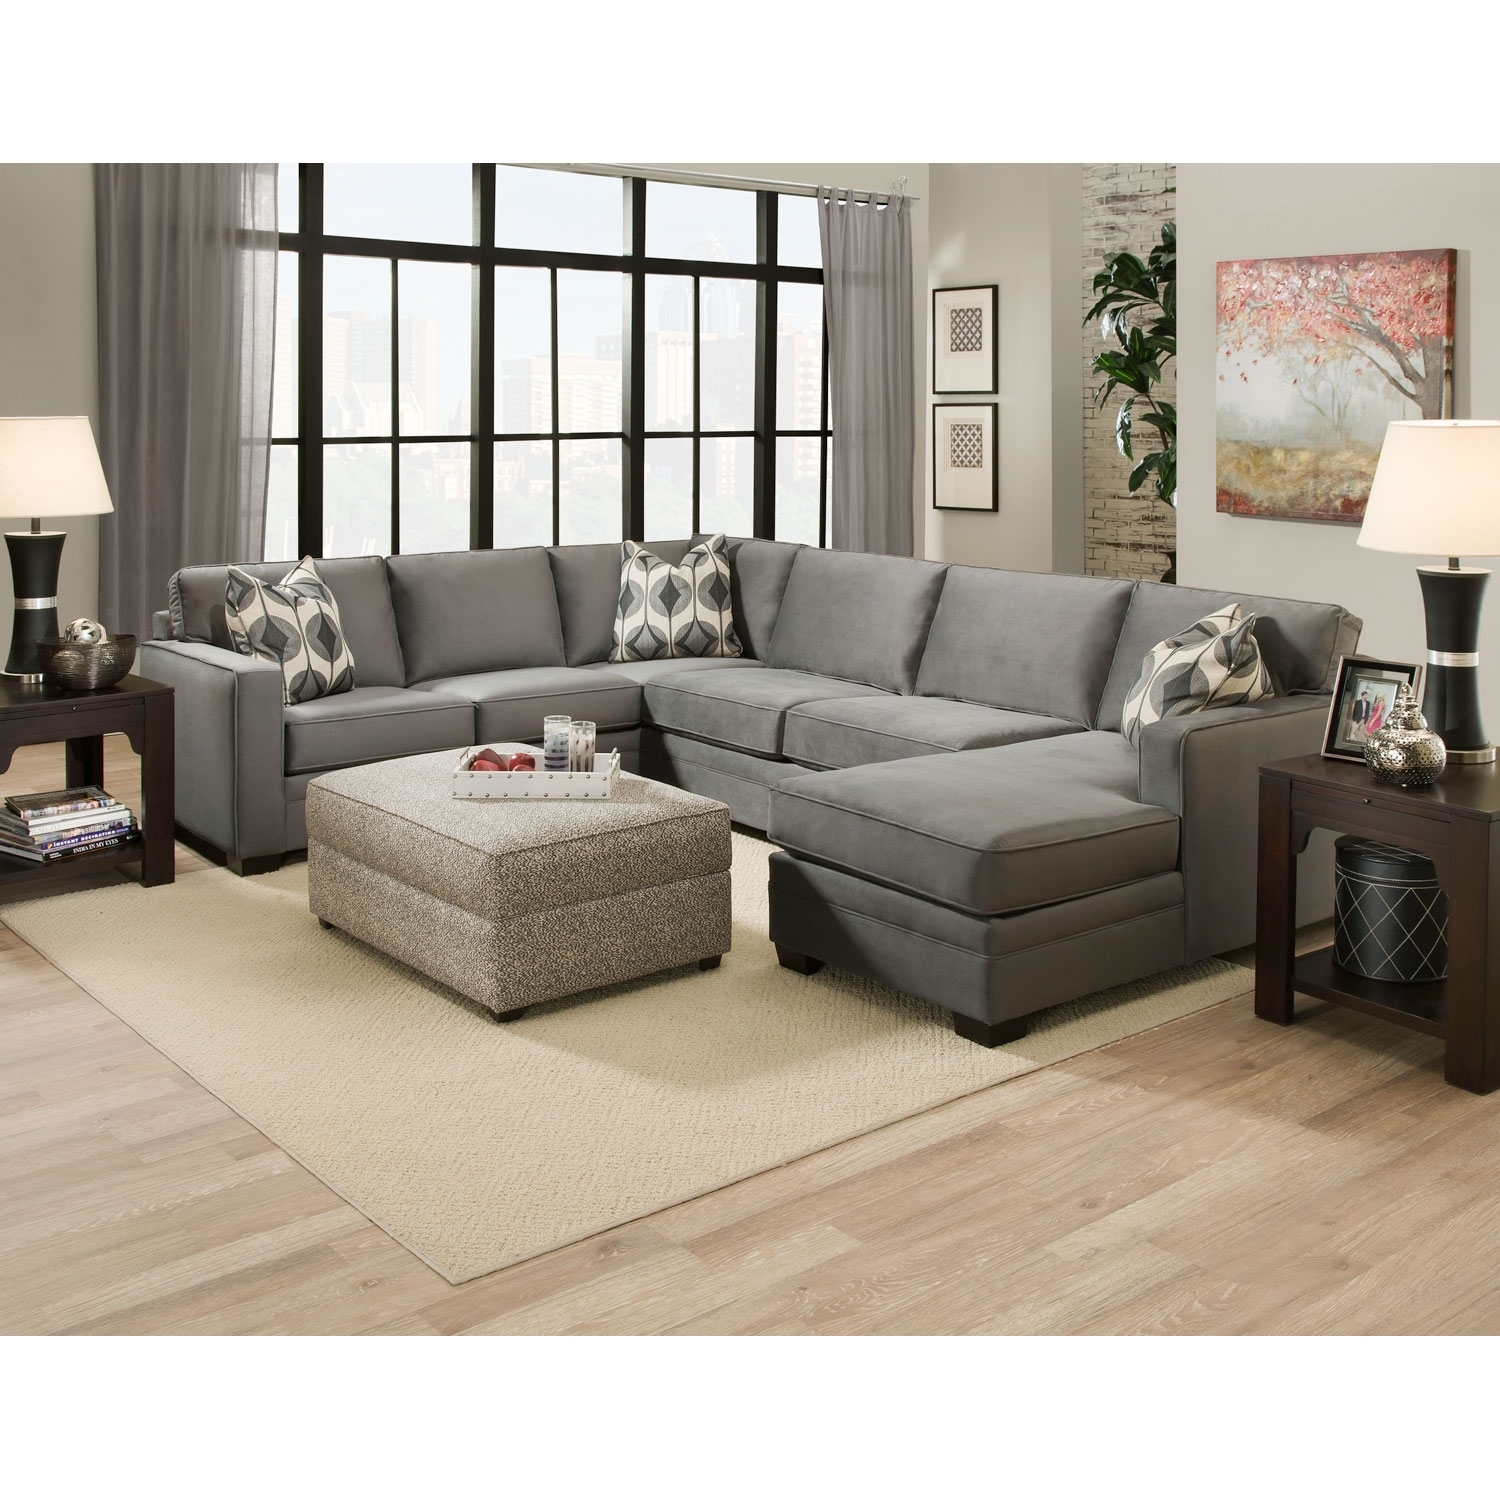 Gray Extra Large U Shaped Sectional Sofa With Chaise And Accent in Extra Large U Shaped Sectionals (Image 9 of 15)